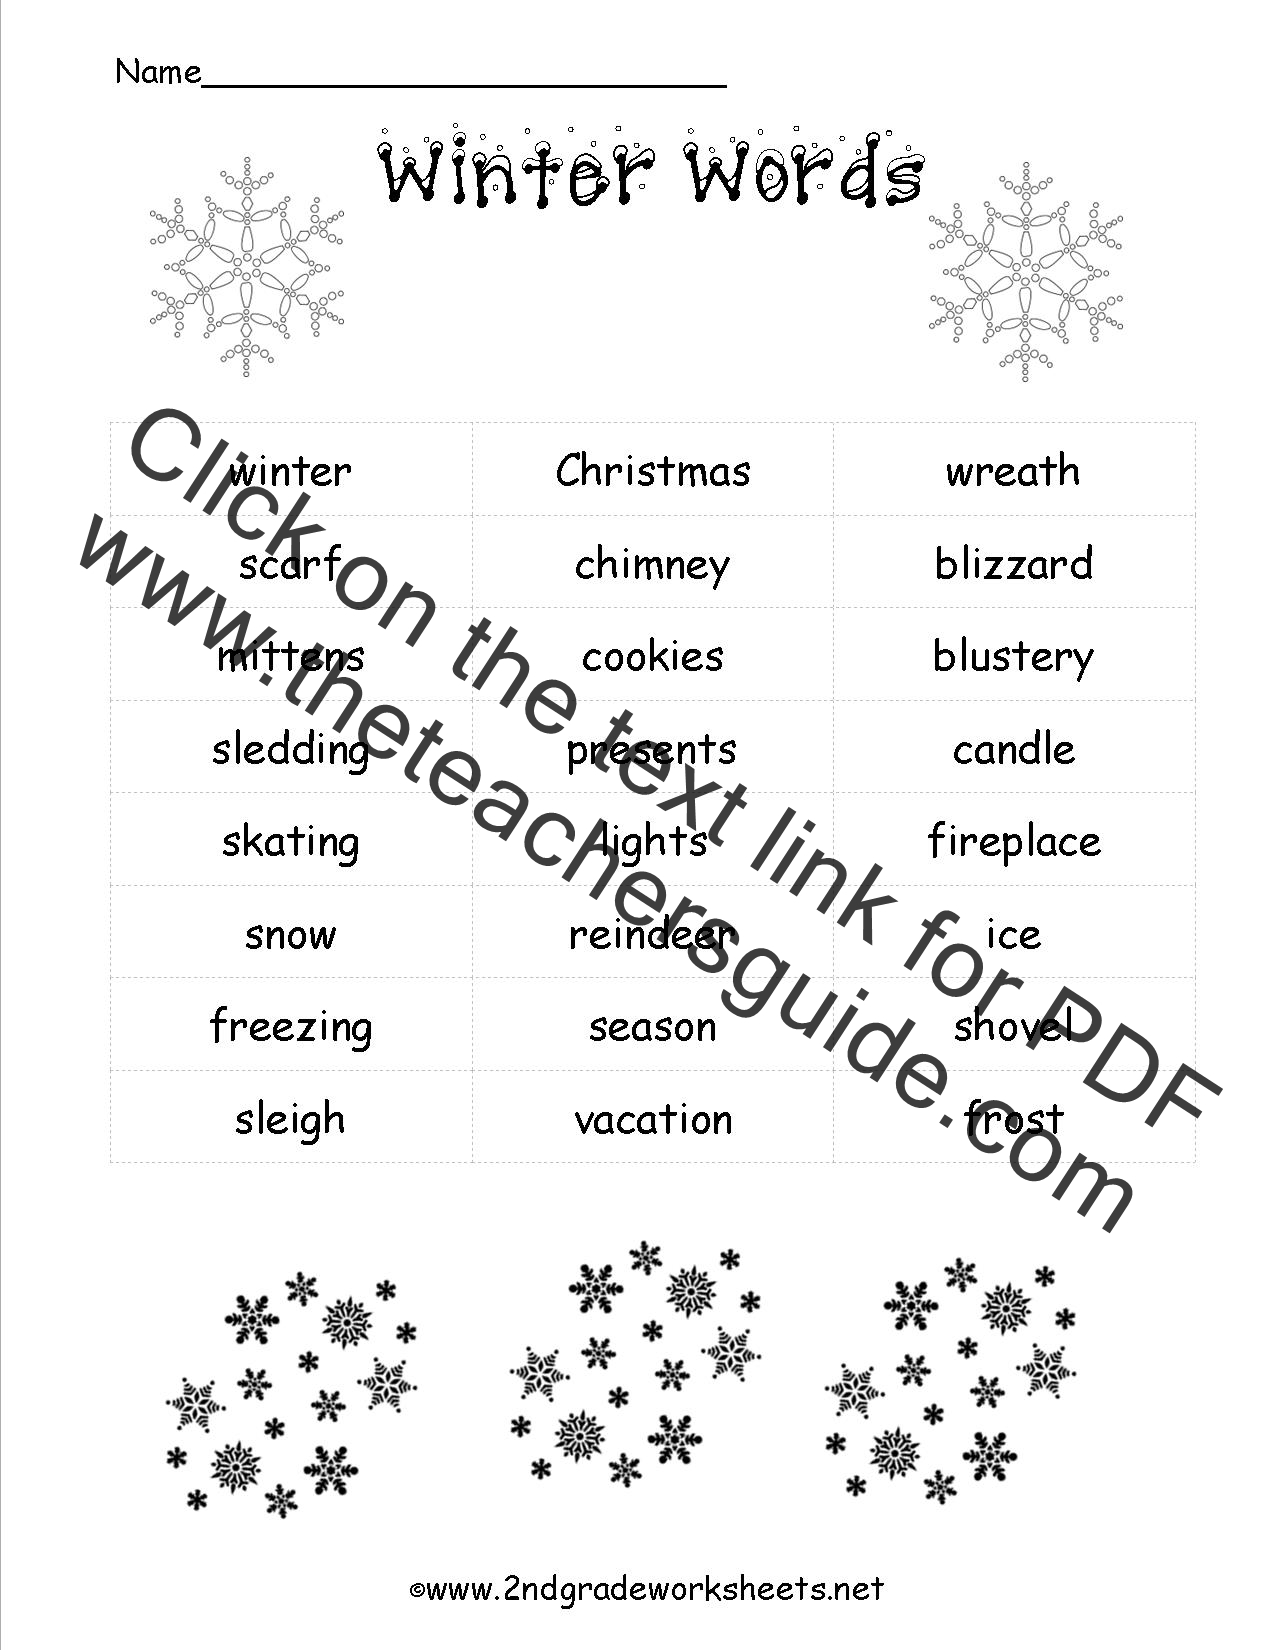 Christmas Worksheets and Printouts – Printable Christmas Worksheets